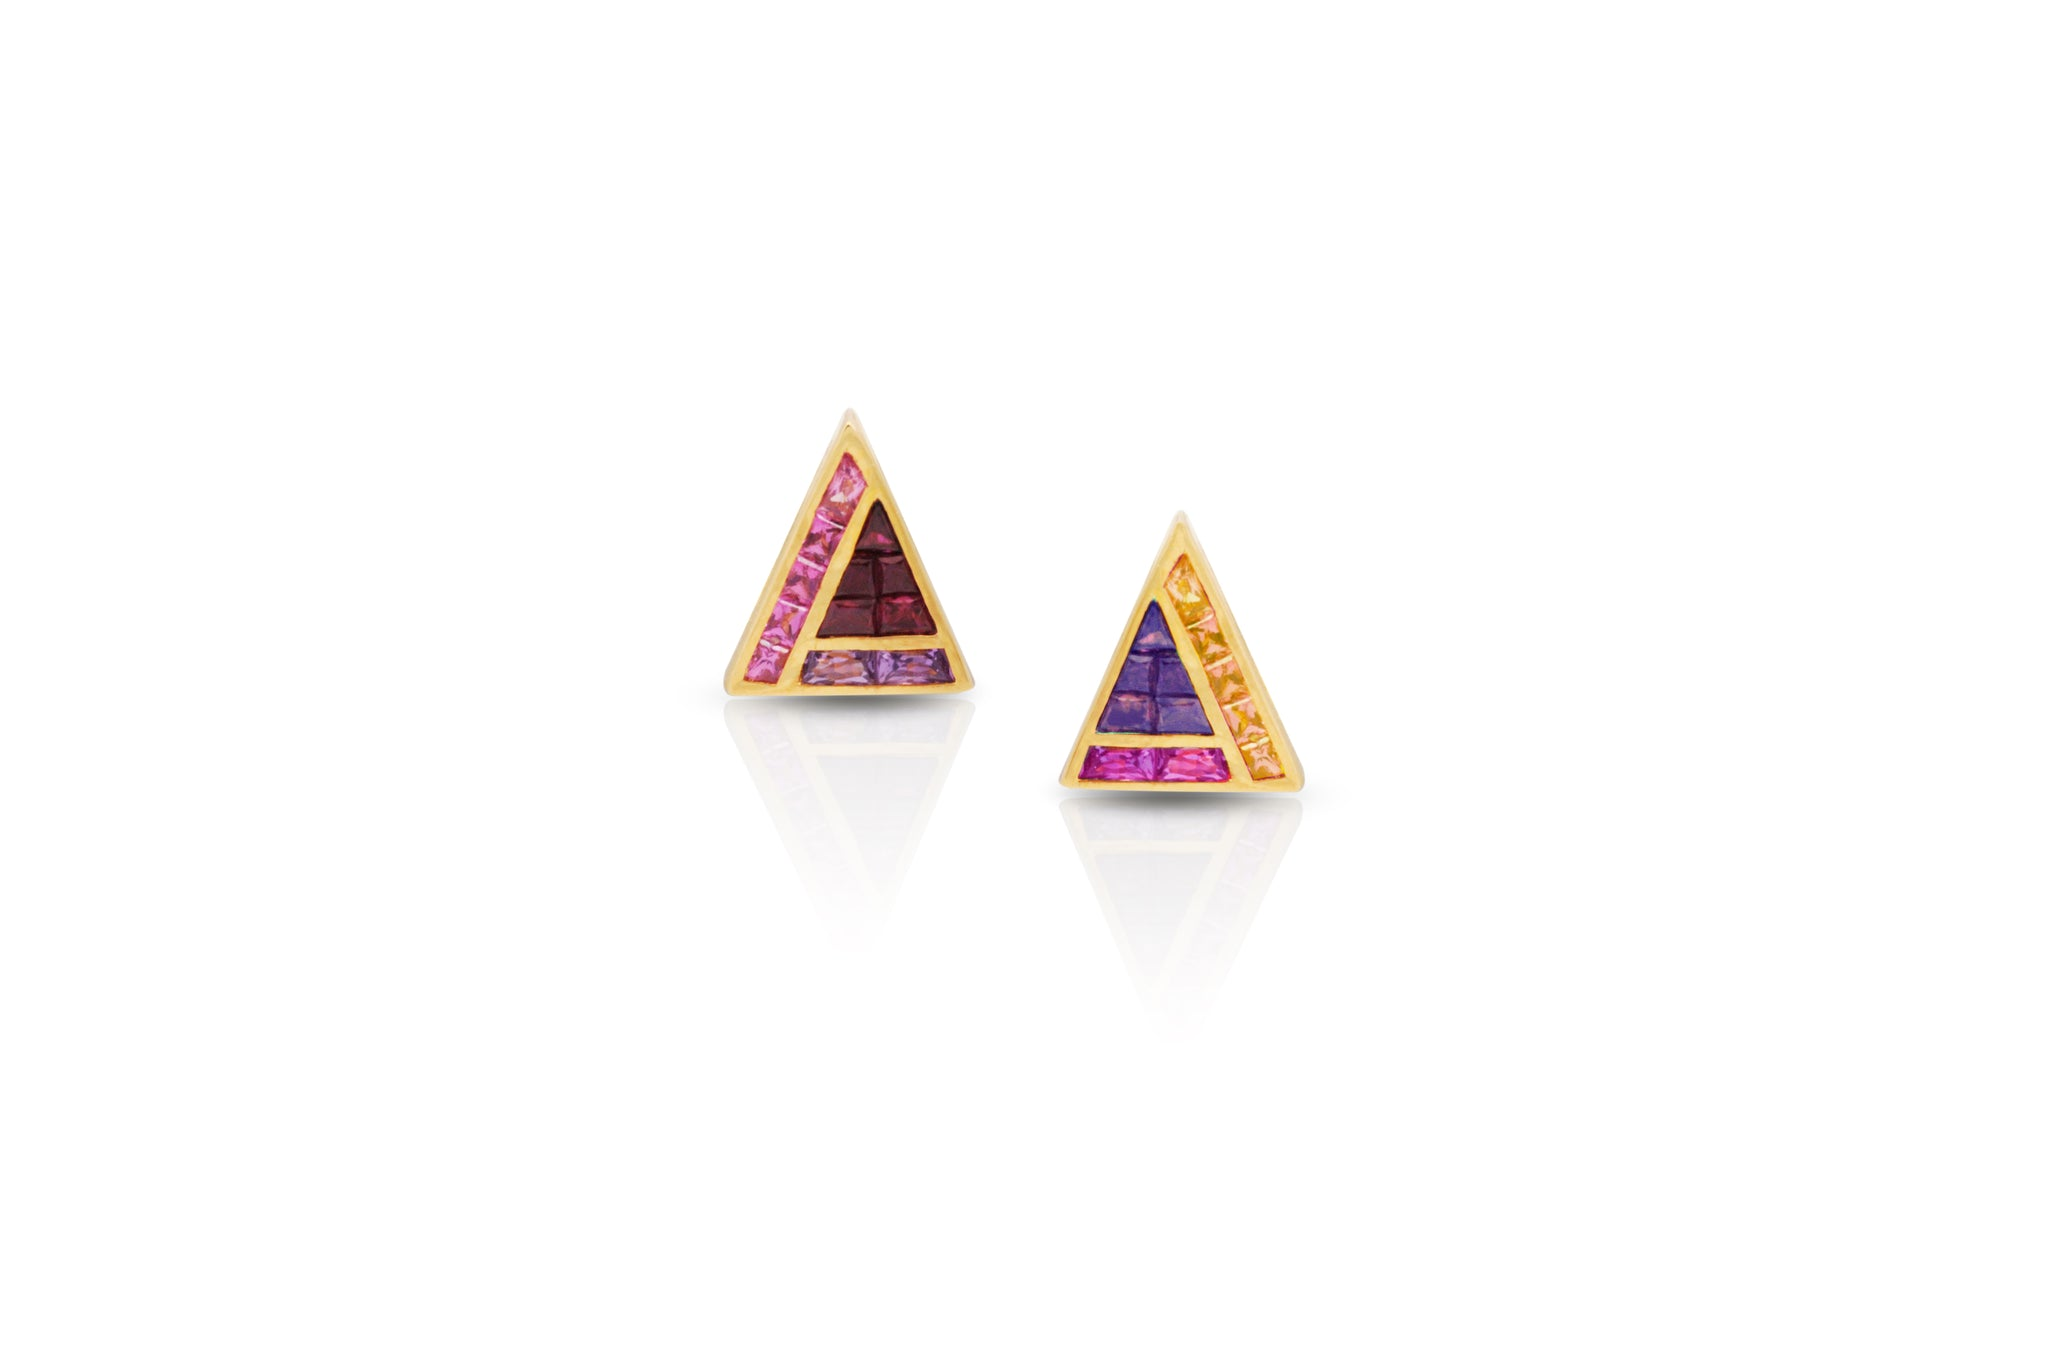 GeoArt Back to Basics Puzzle Stud Earrings